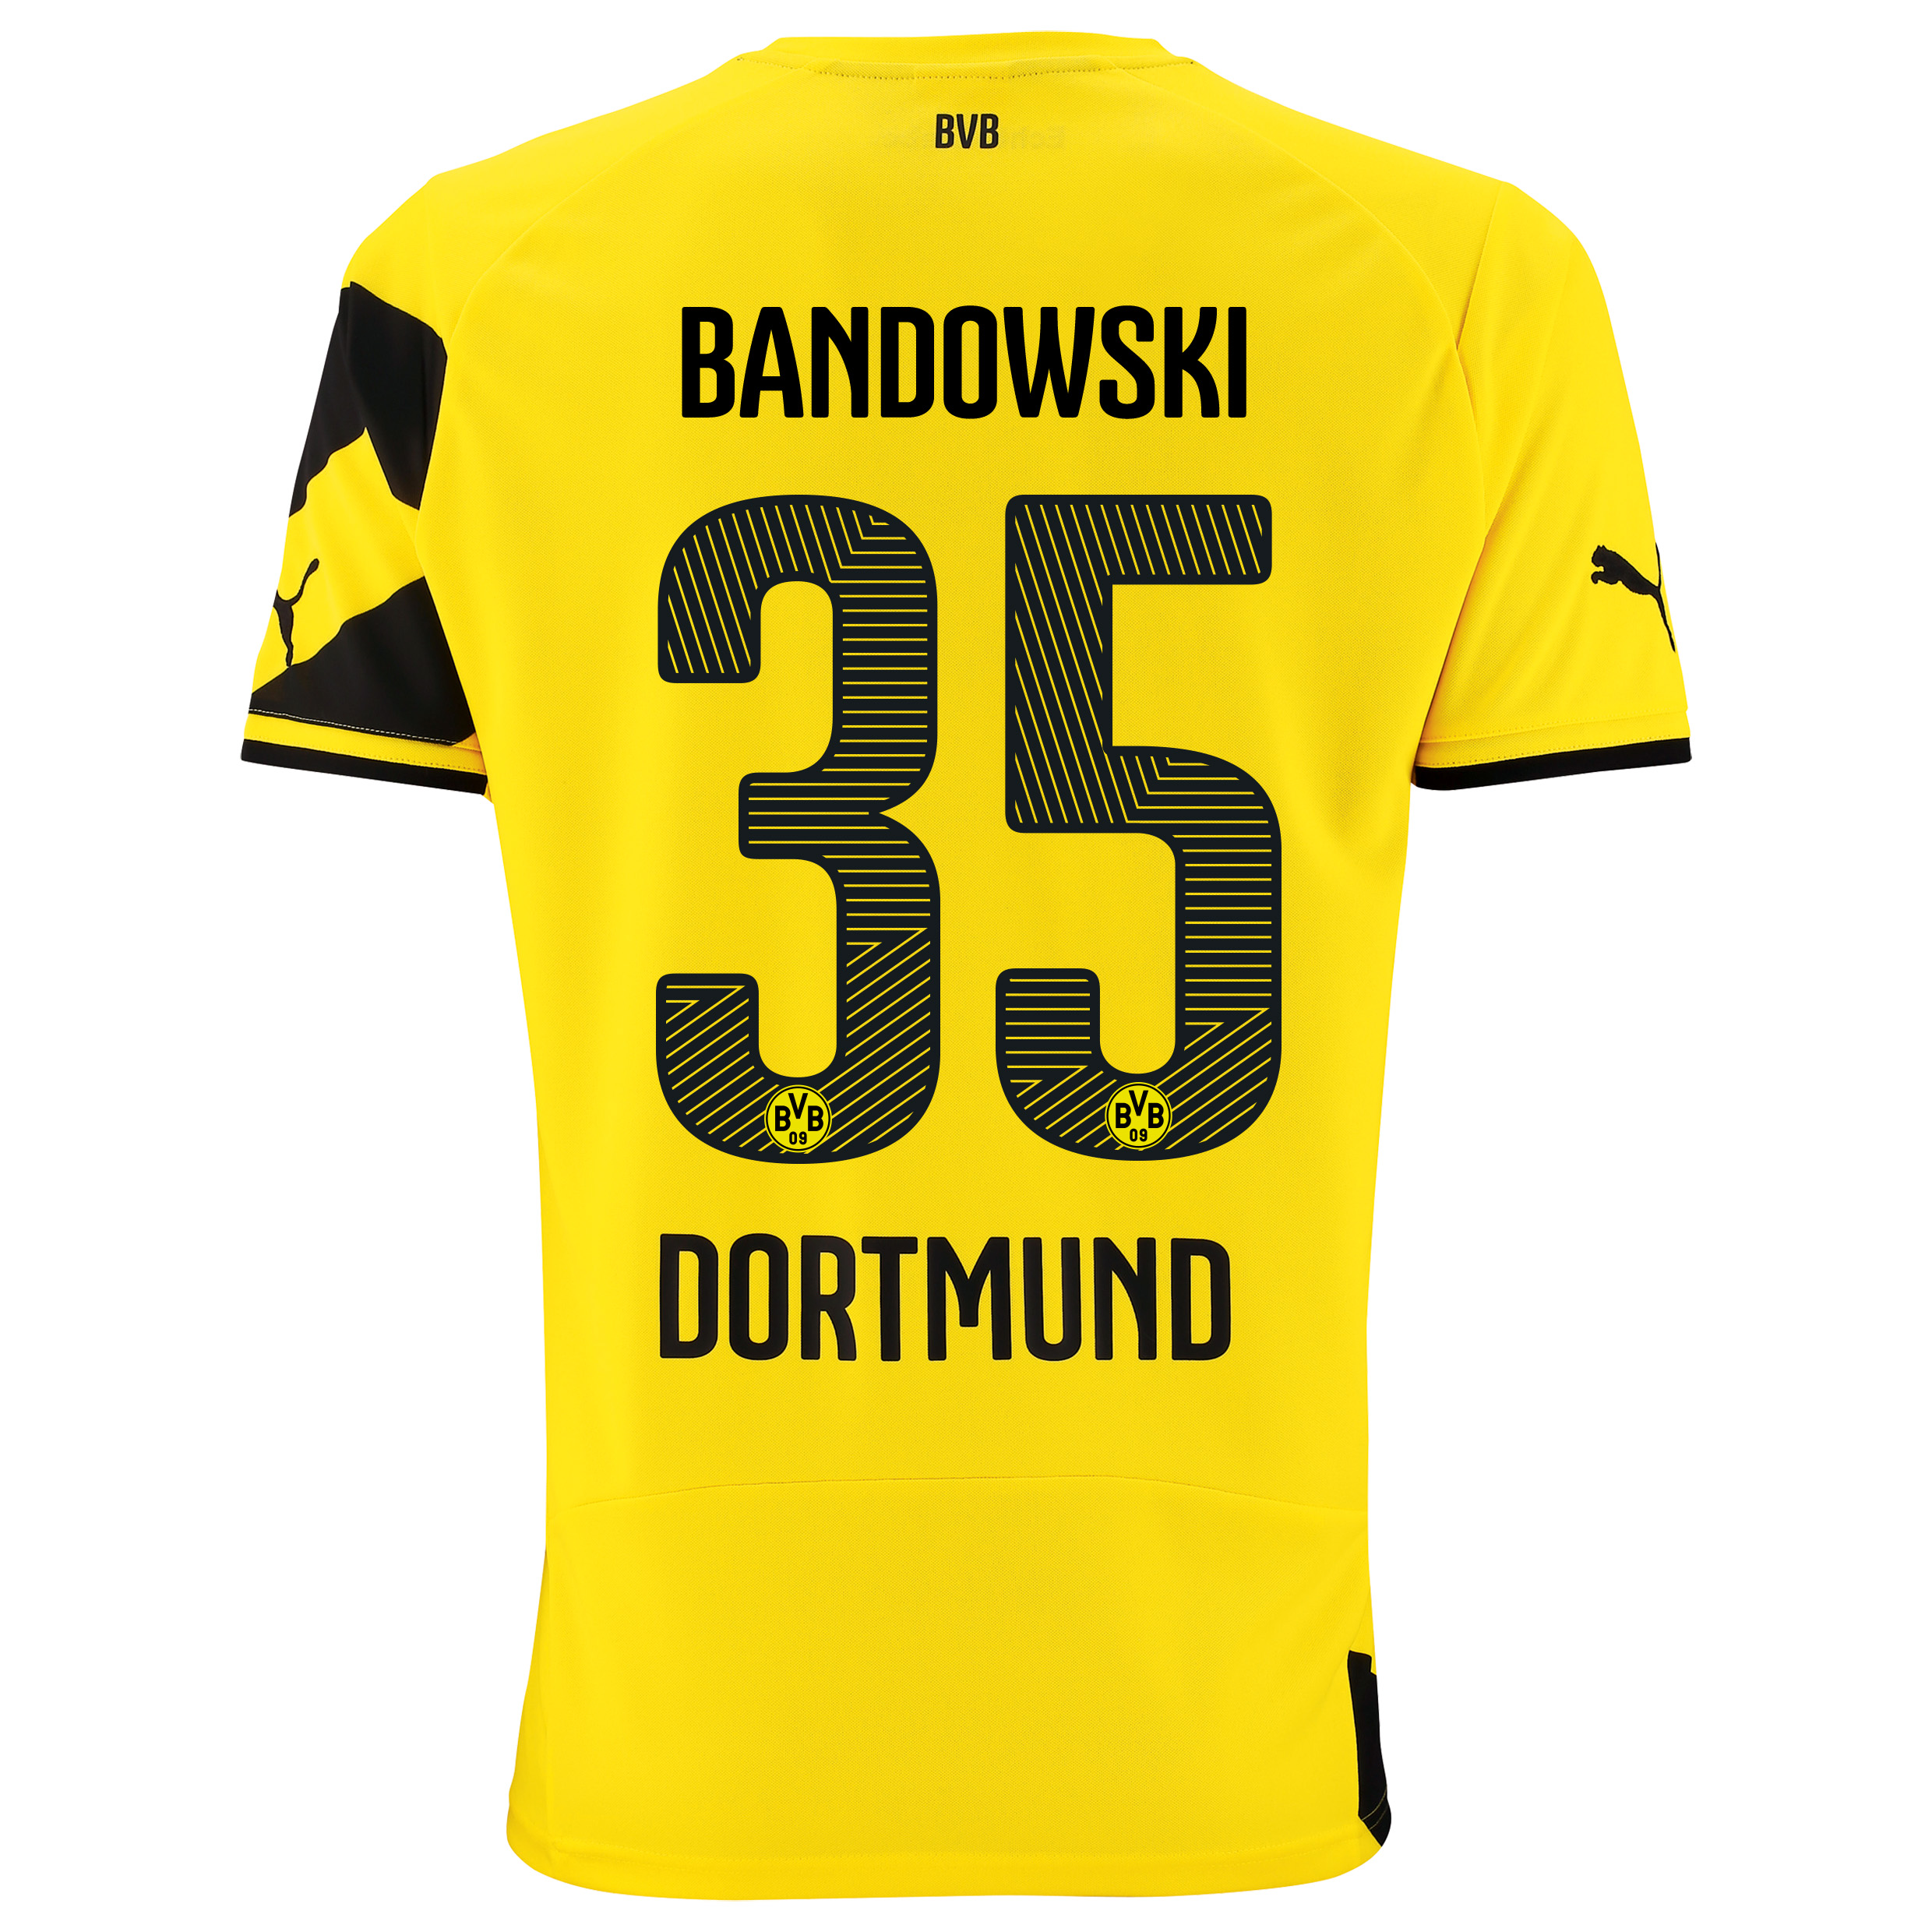 BVB Home Shirt 2014/15 with Bandowski 35 printing